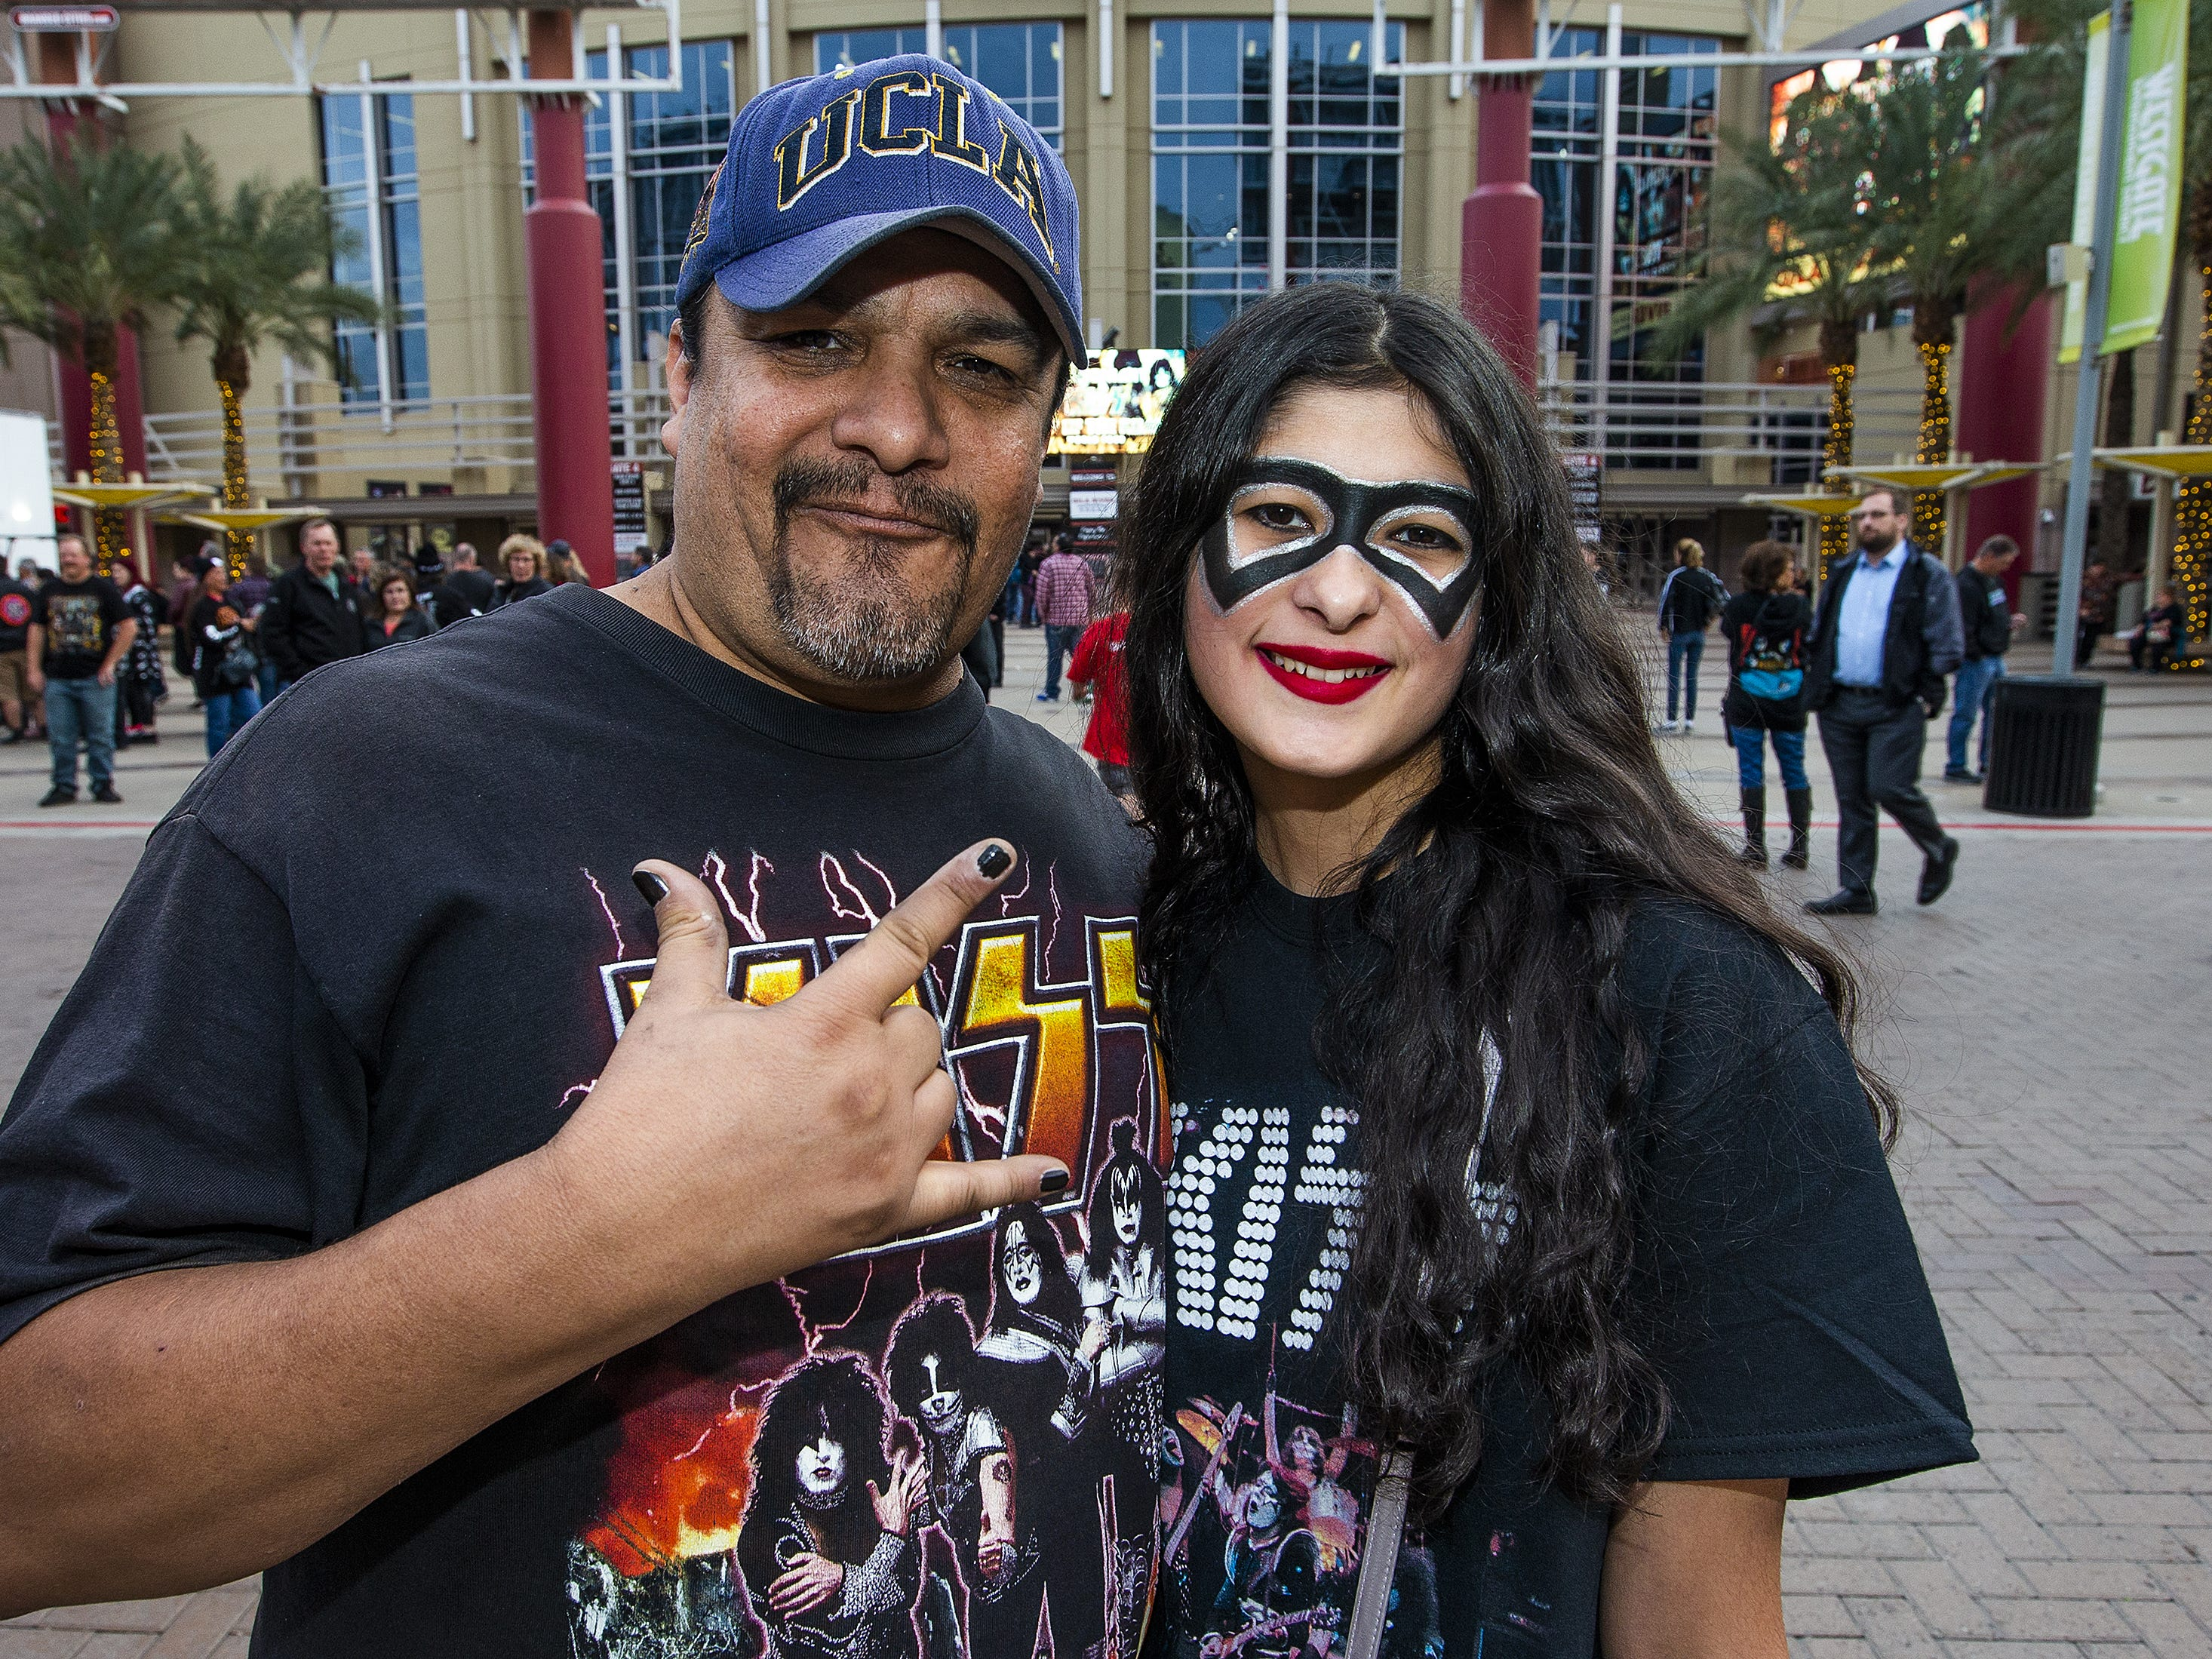 Dave Lopez, 52, and his daughter, Callie, 17, of Phoenix, show off their best Kiss makeup prior to the concert by the famed group at Gila River Arena in Glendale, Wednesday, Feb. 13, 2019.  The concert was part of the End of the Road World Tour, the band's farewell to the fans.